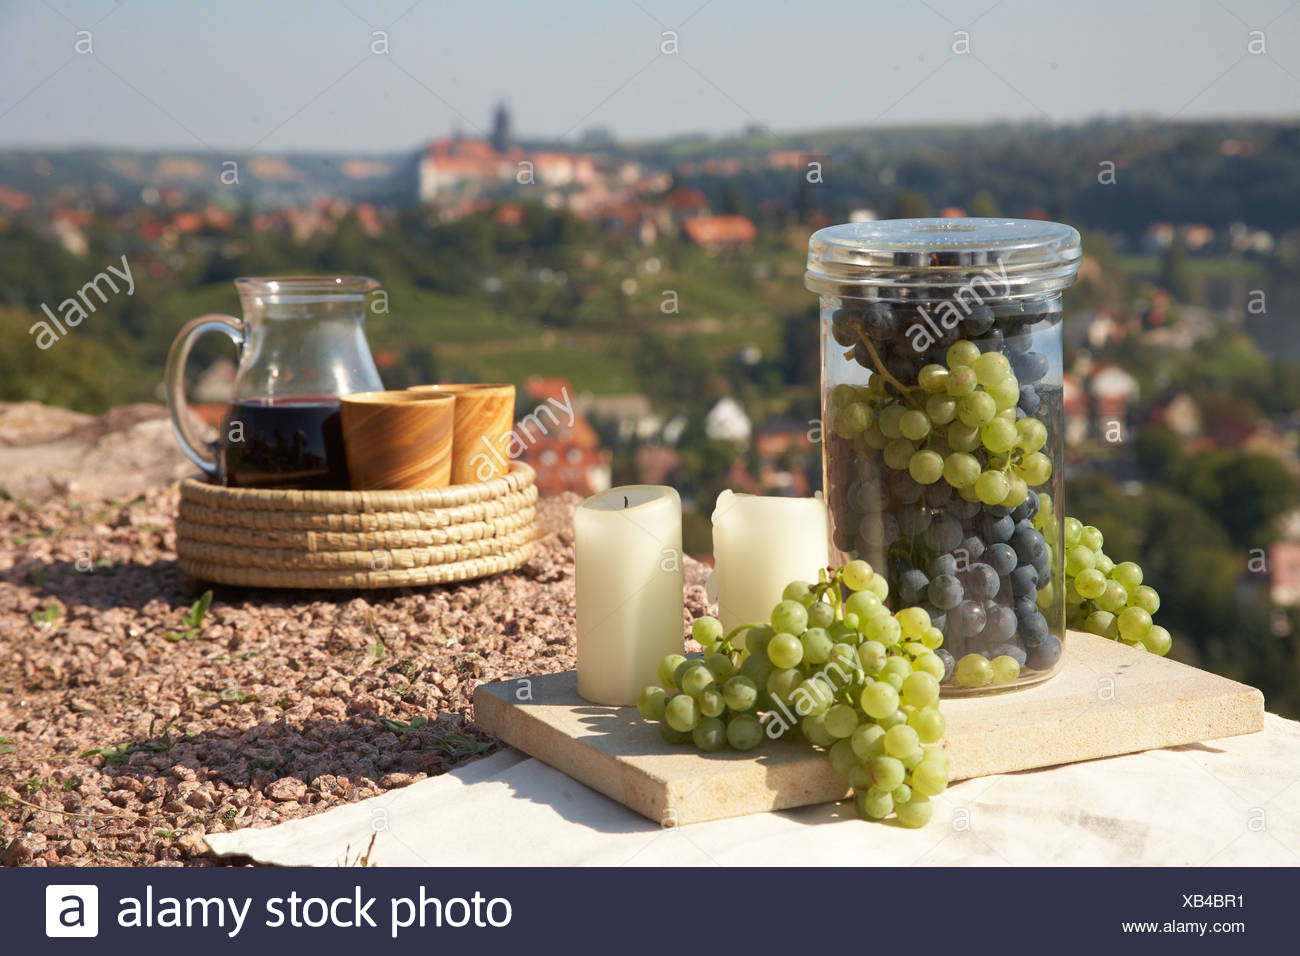 Still life with wine, grapes, a wine decanter, wine cups and candles, against the backdrop of Meissen, Saxony, Germany, Europe - Stock Image